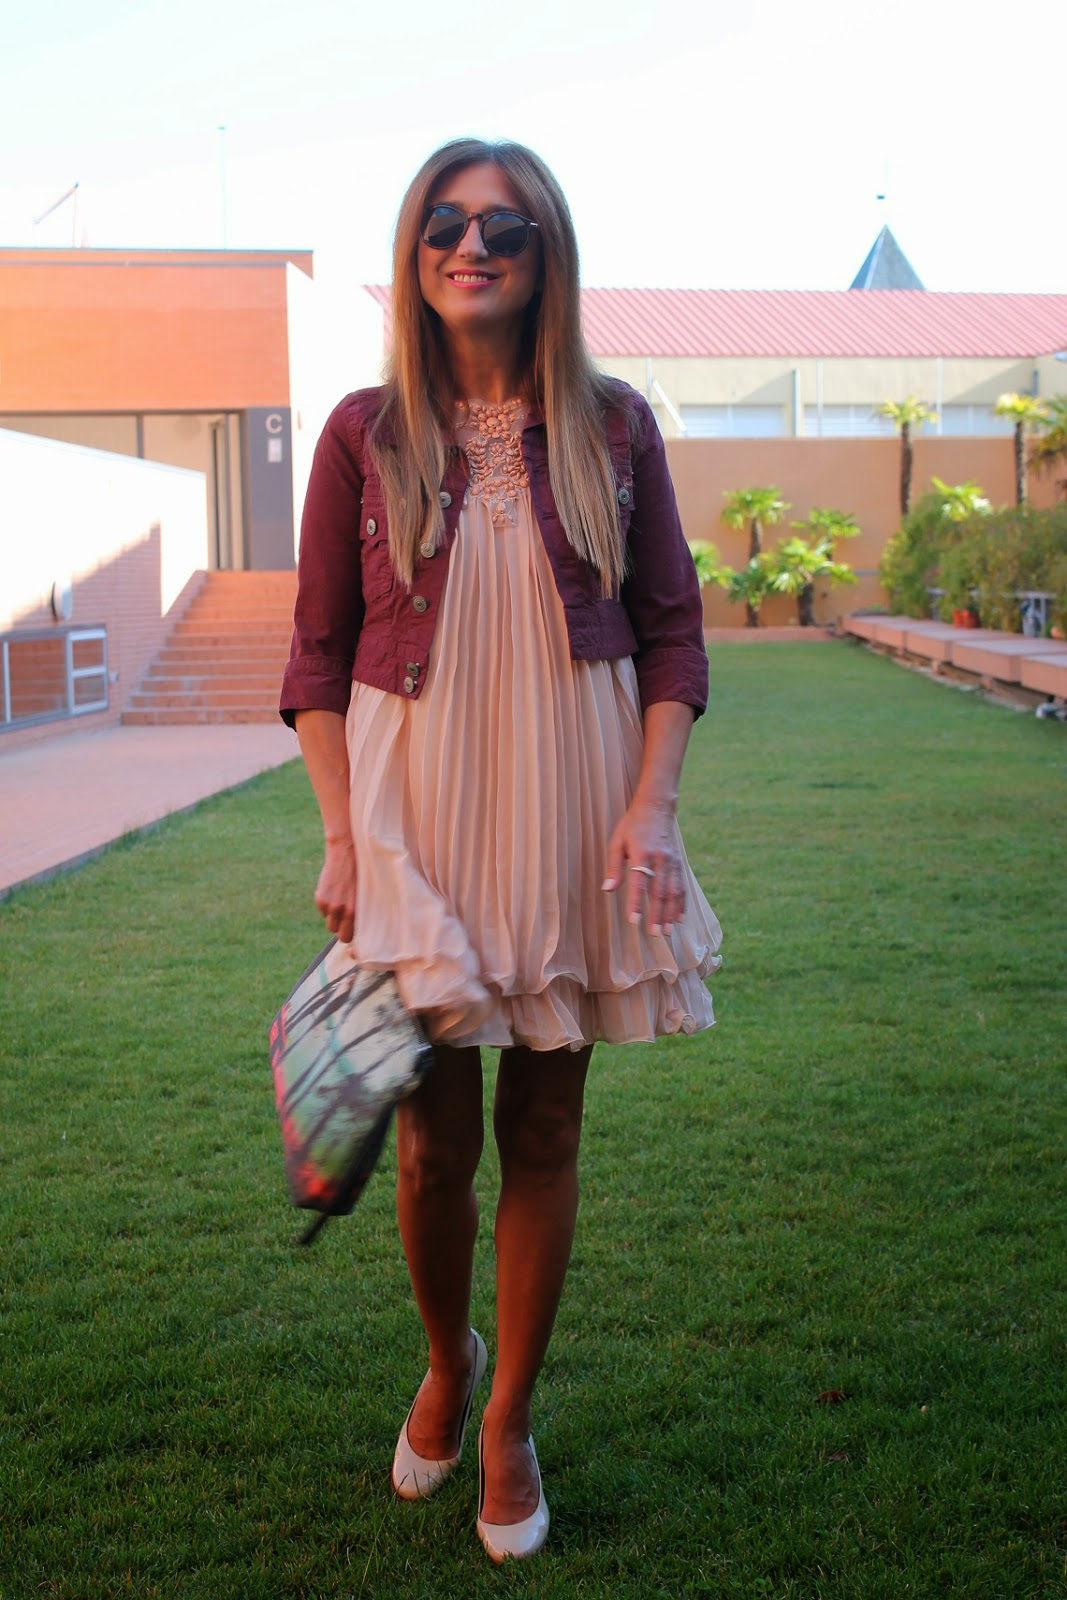 Sheinside, dress, party, look, street style, fashion blogger, outfit, lady, cool, Zubi, Carmen Hummer Style